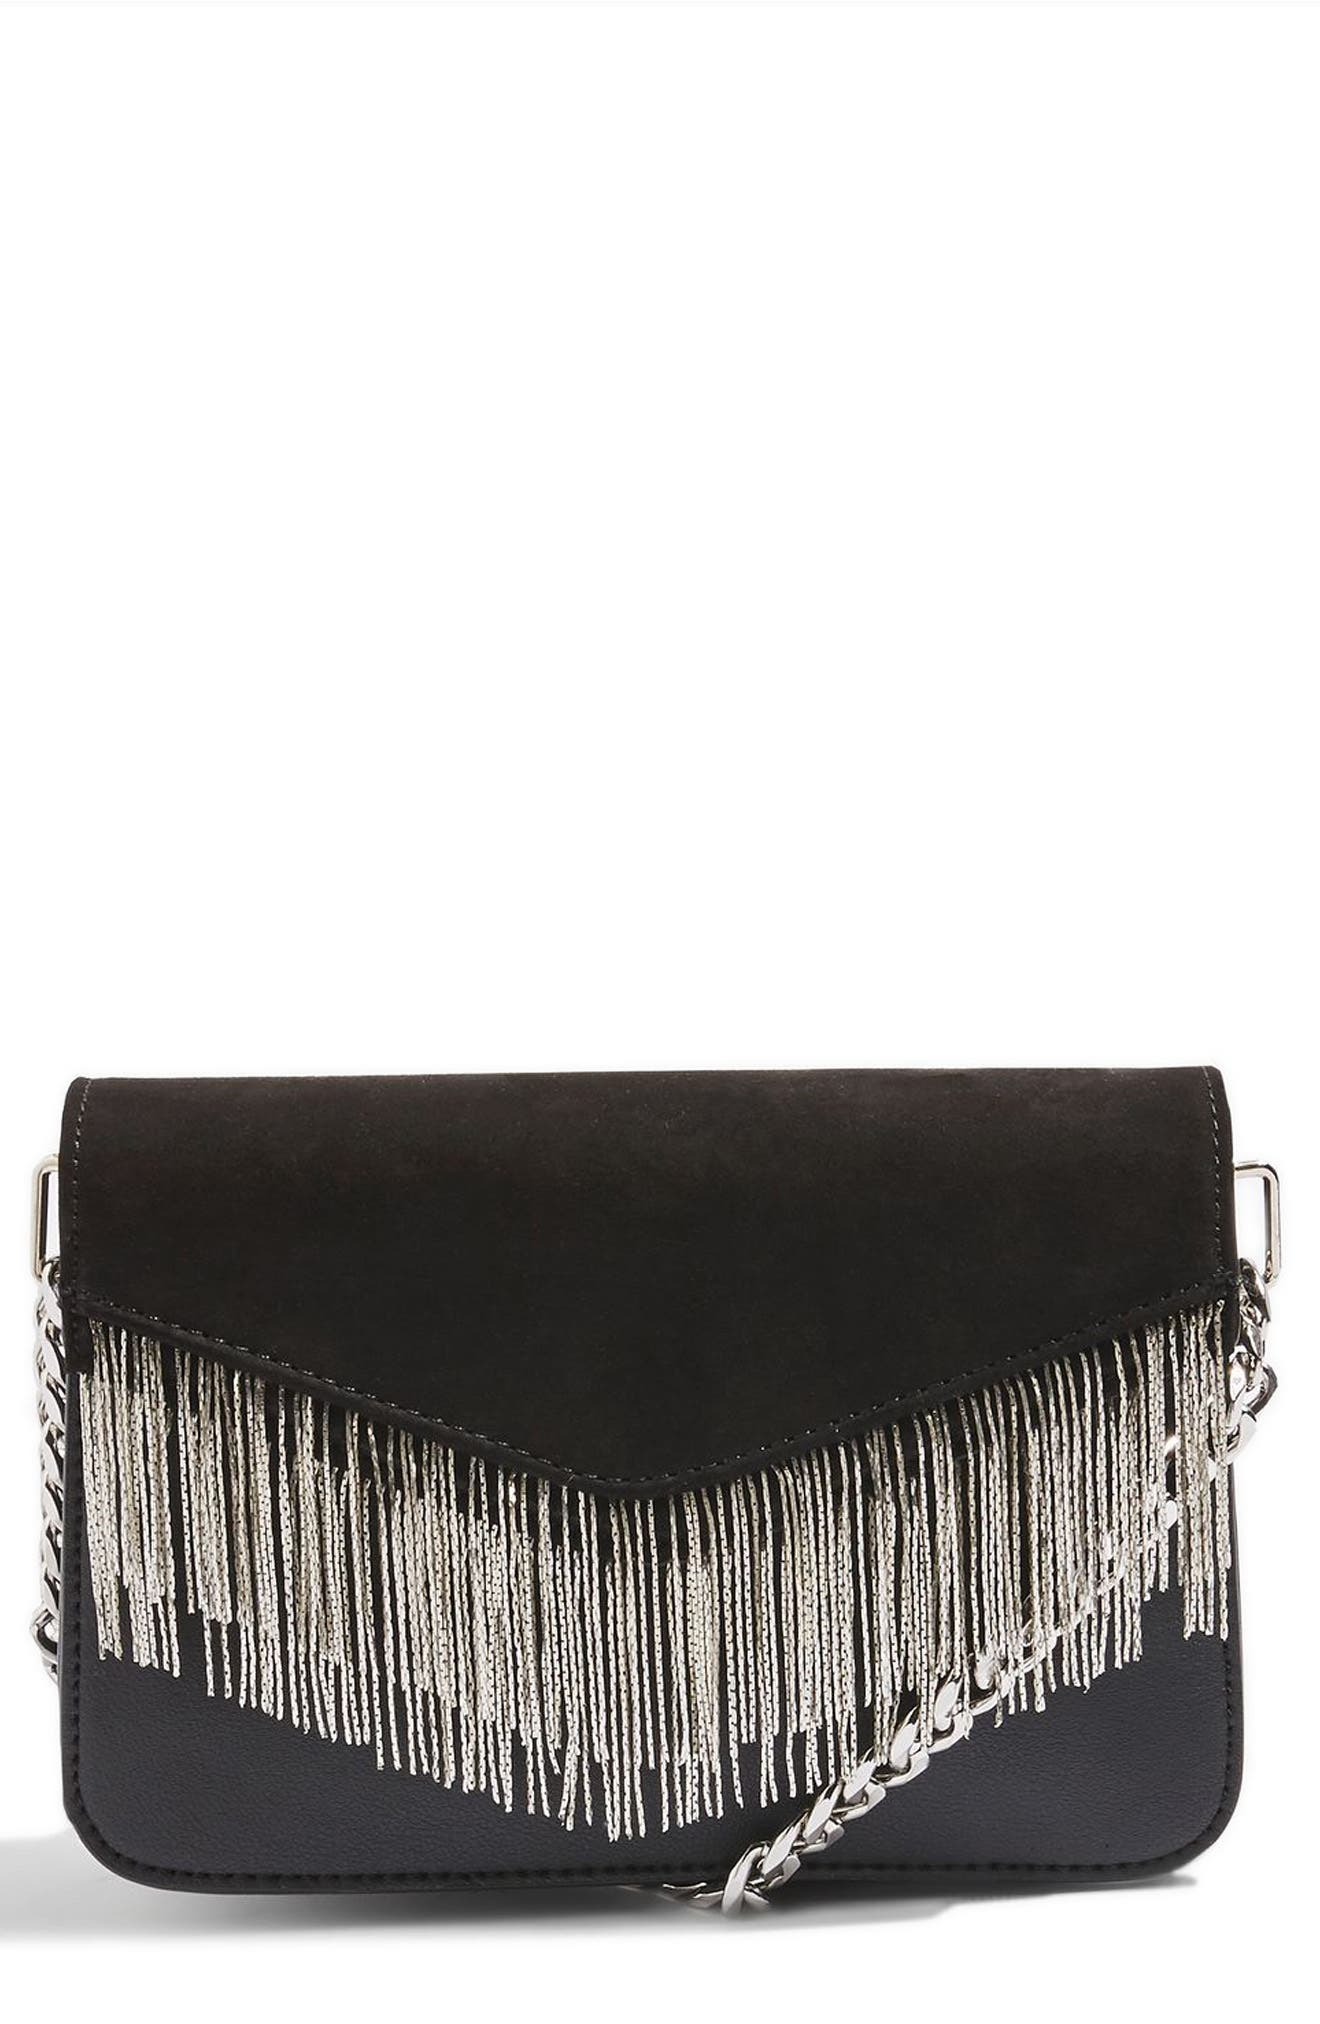 Remy Chain Flap Faux Leather Crossbody Bag,                             Main thumbnail 1, color,                             001